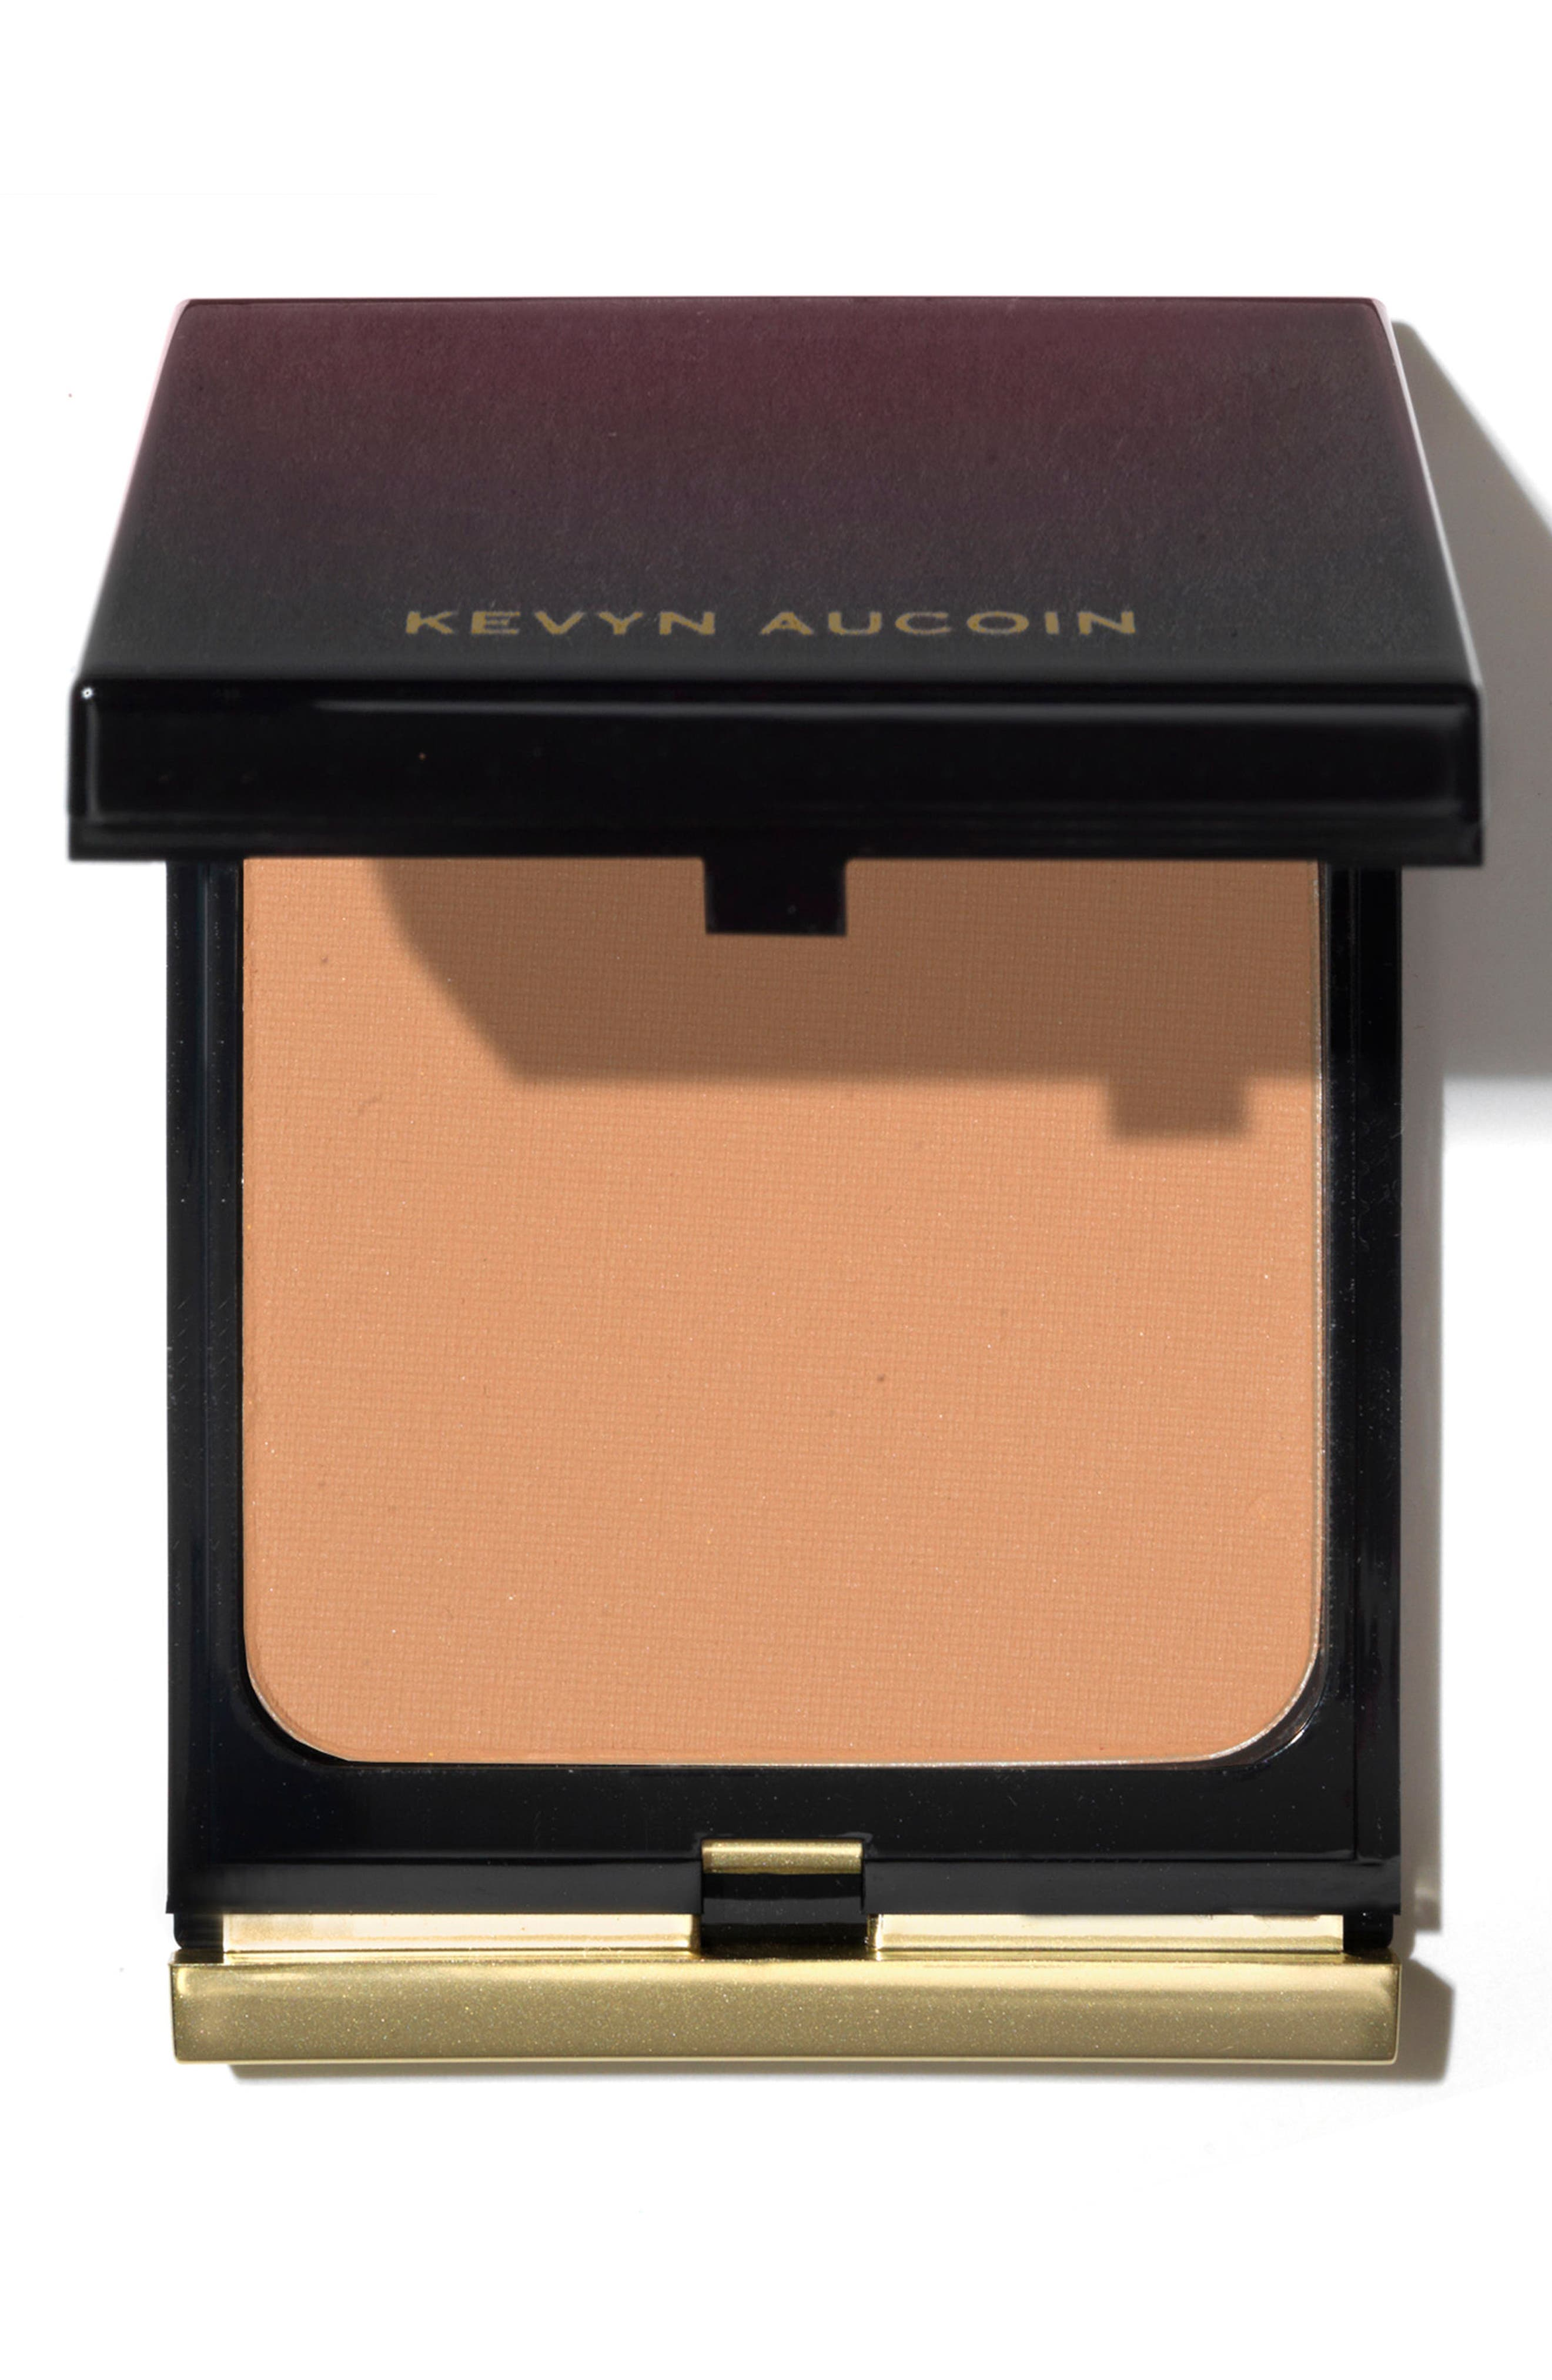 SPACE.NK.apothecary Kevyn Aucoin Beauty The Matte Bronzing Veil,                             Main thumbnail 1, color,                             250